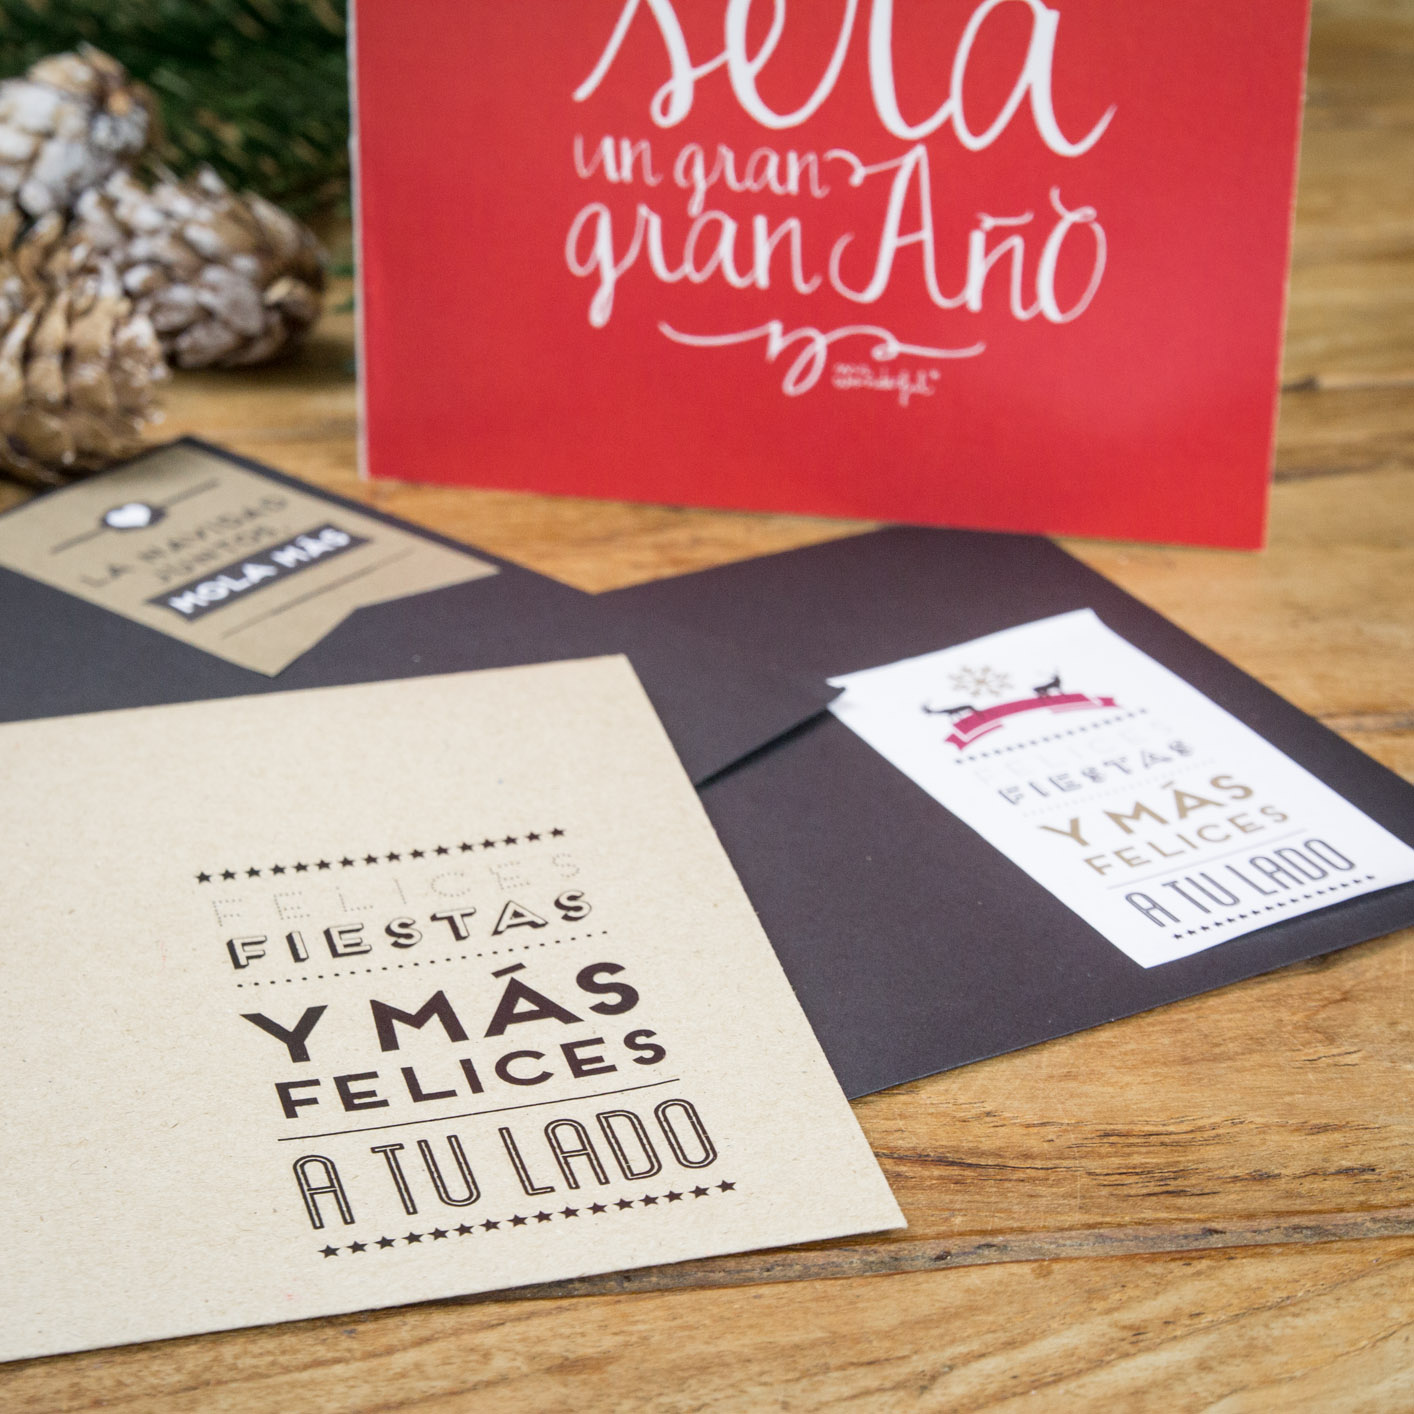 mr_wonderful_tutorial_descargable_freebie_postal_felicitacion_navidad_02